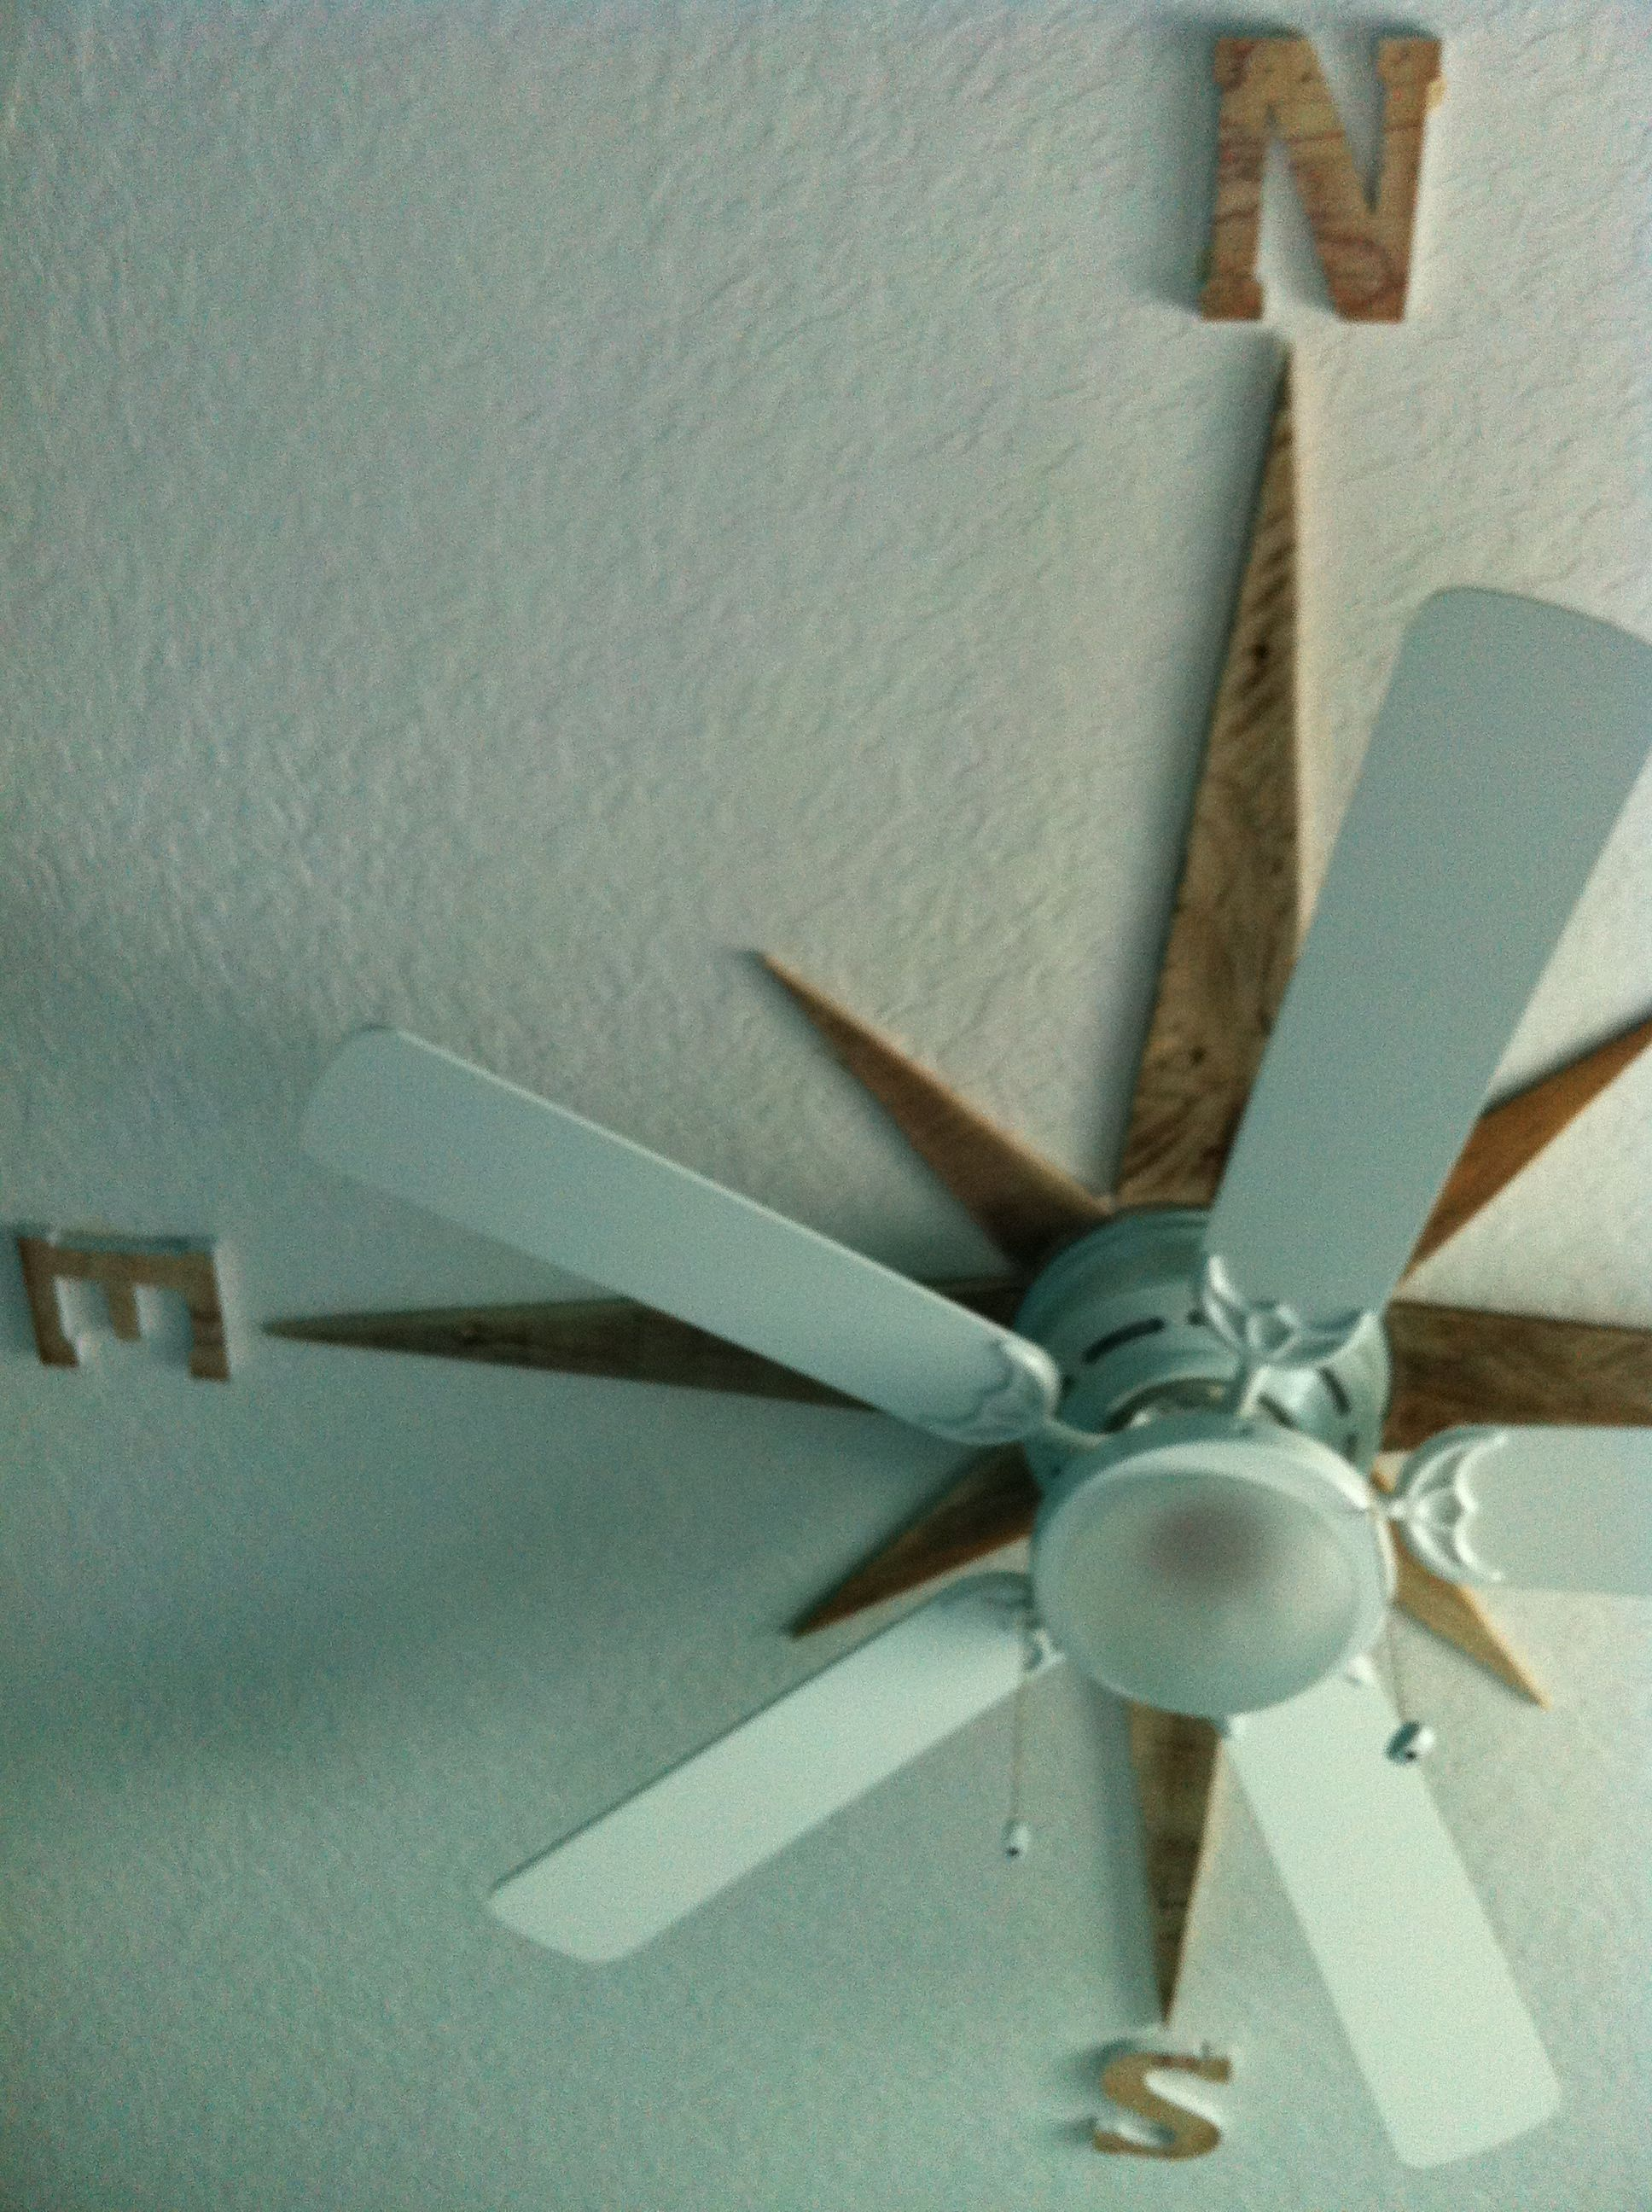 I made a nautical star on the ceiling around the fan using pallet